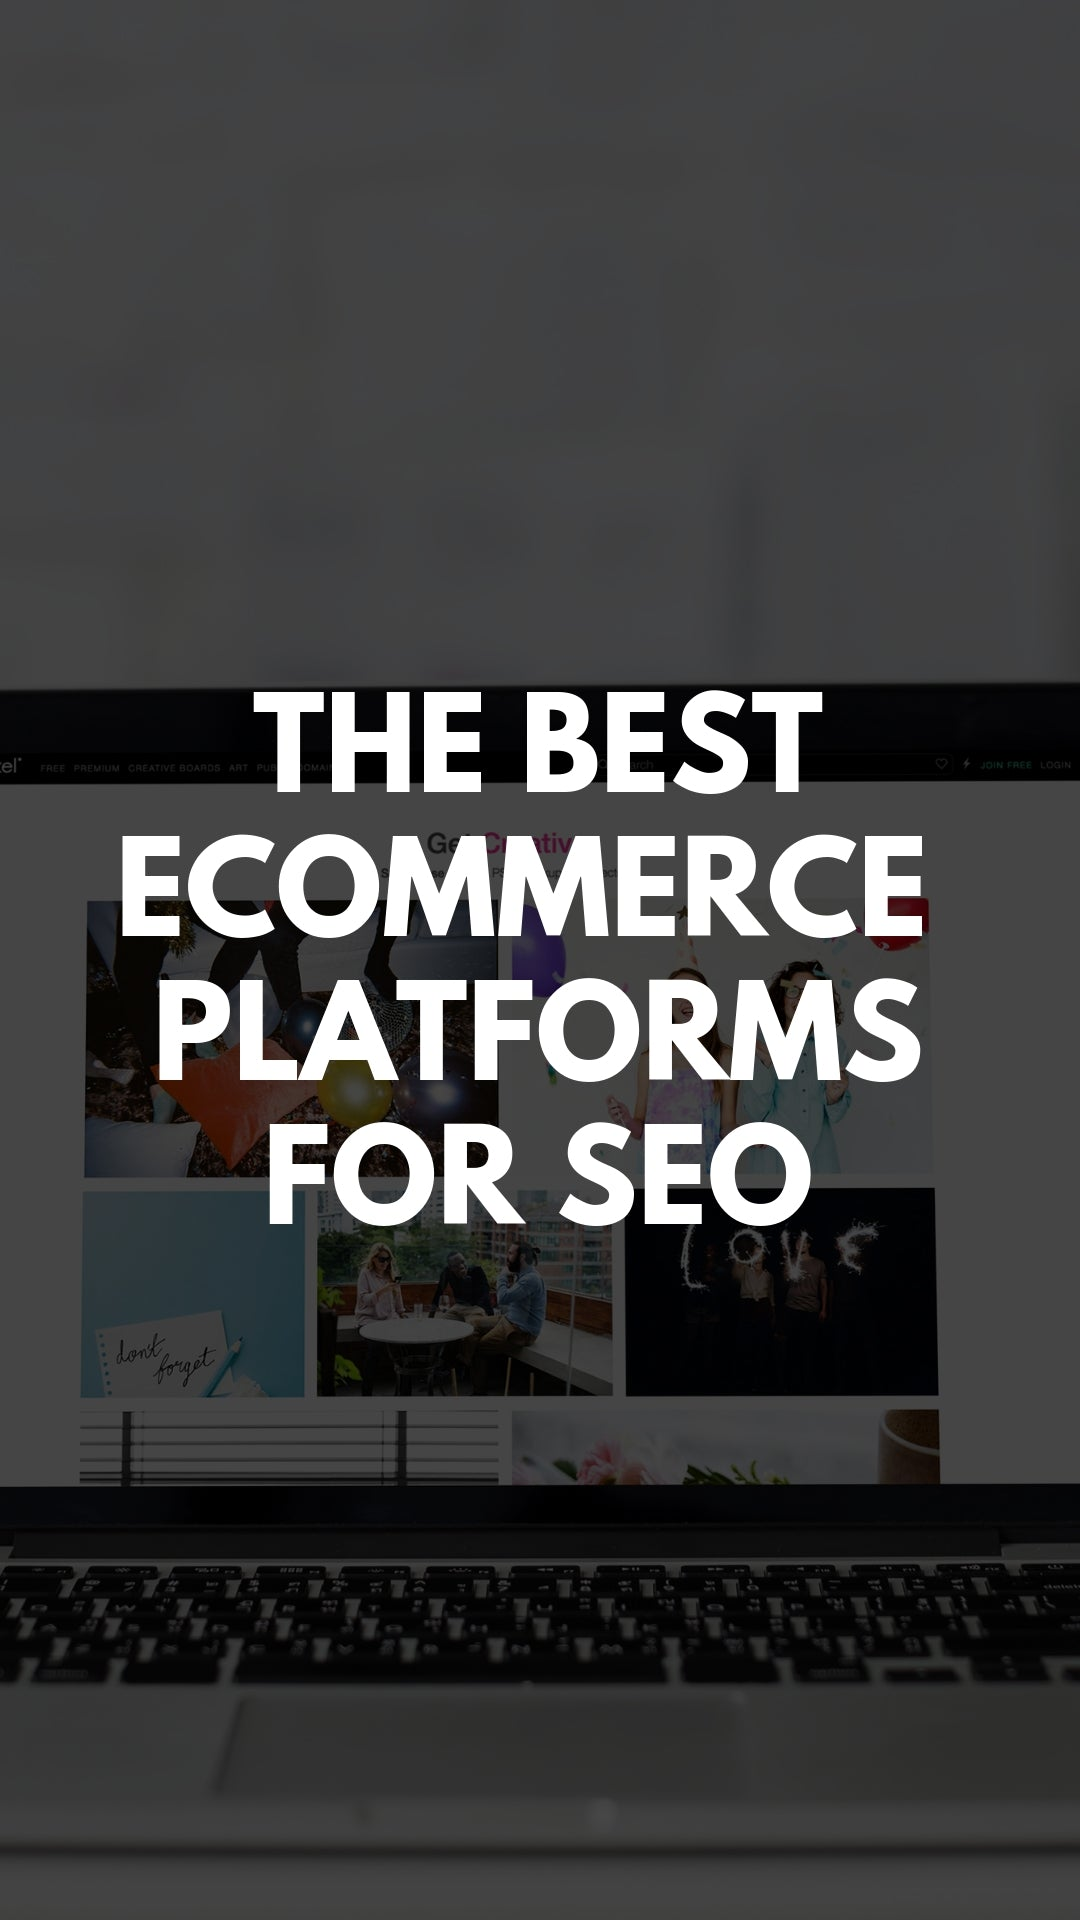 The Best Ecommerce Platform For SEO - The Features That Matter #ecommerce #platforms #seo